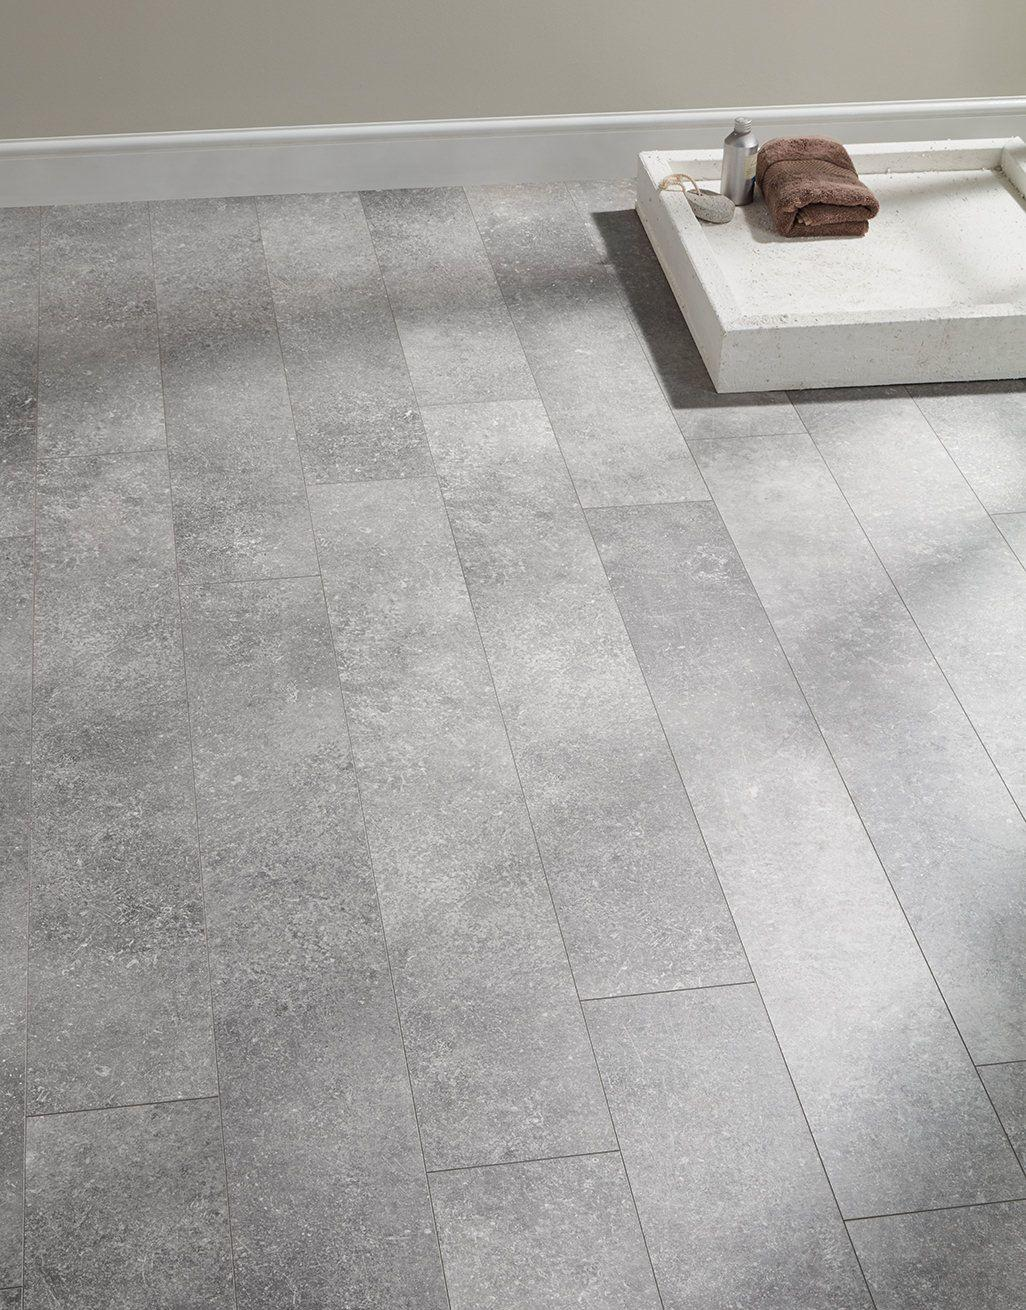 Baelea Ceramic Aqua Industrial Light Grey 8mm Tile Effect Laminate Flooring